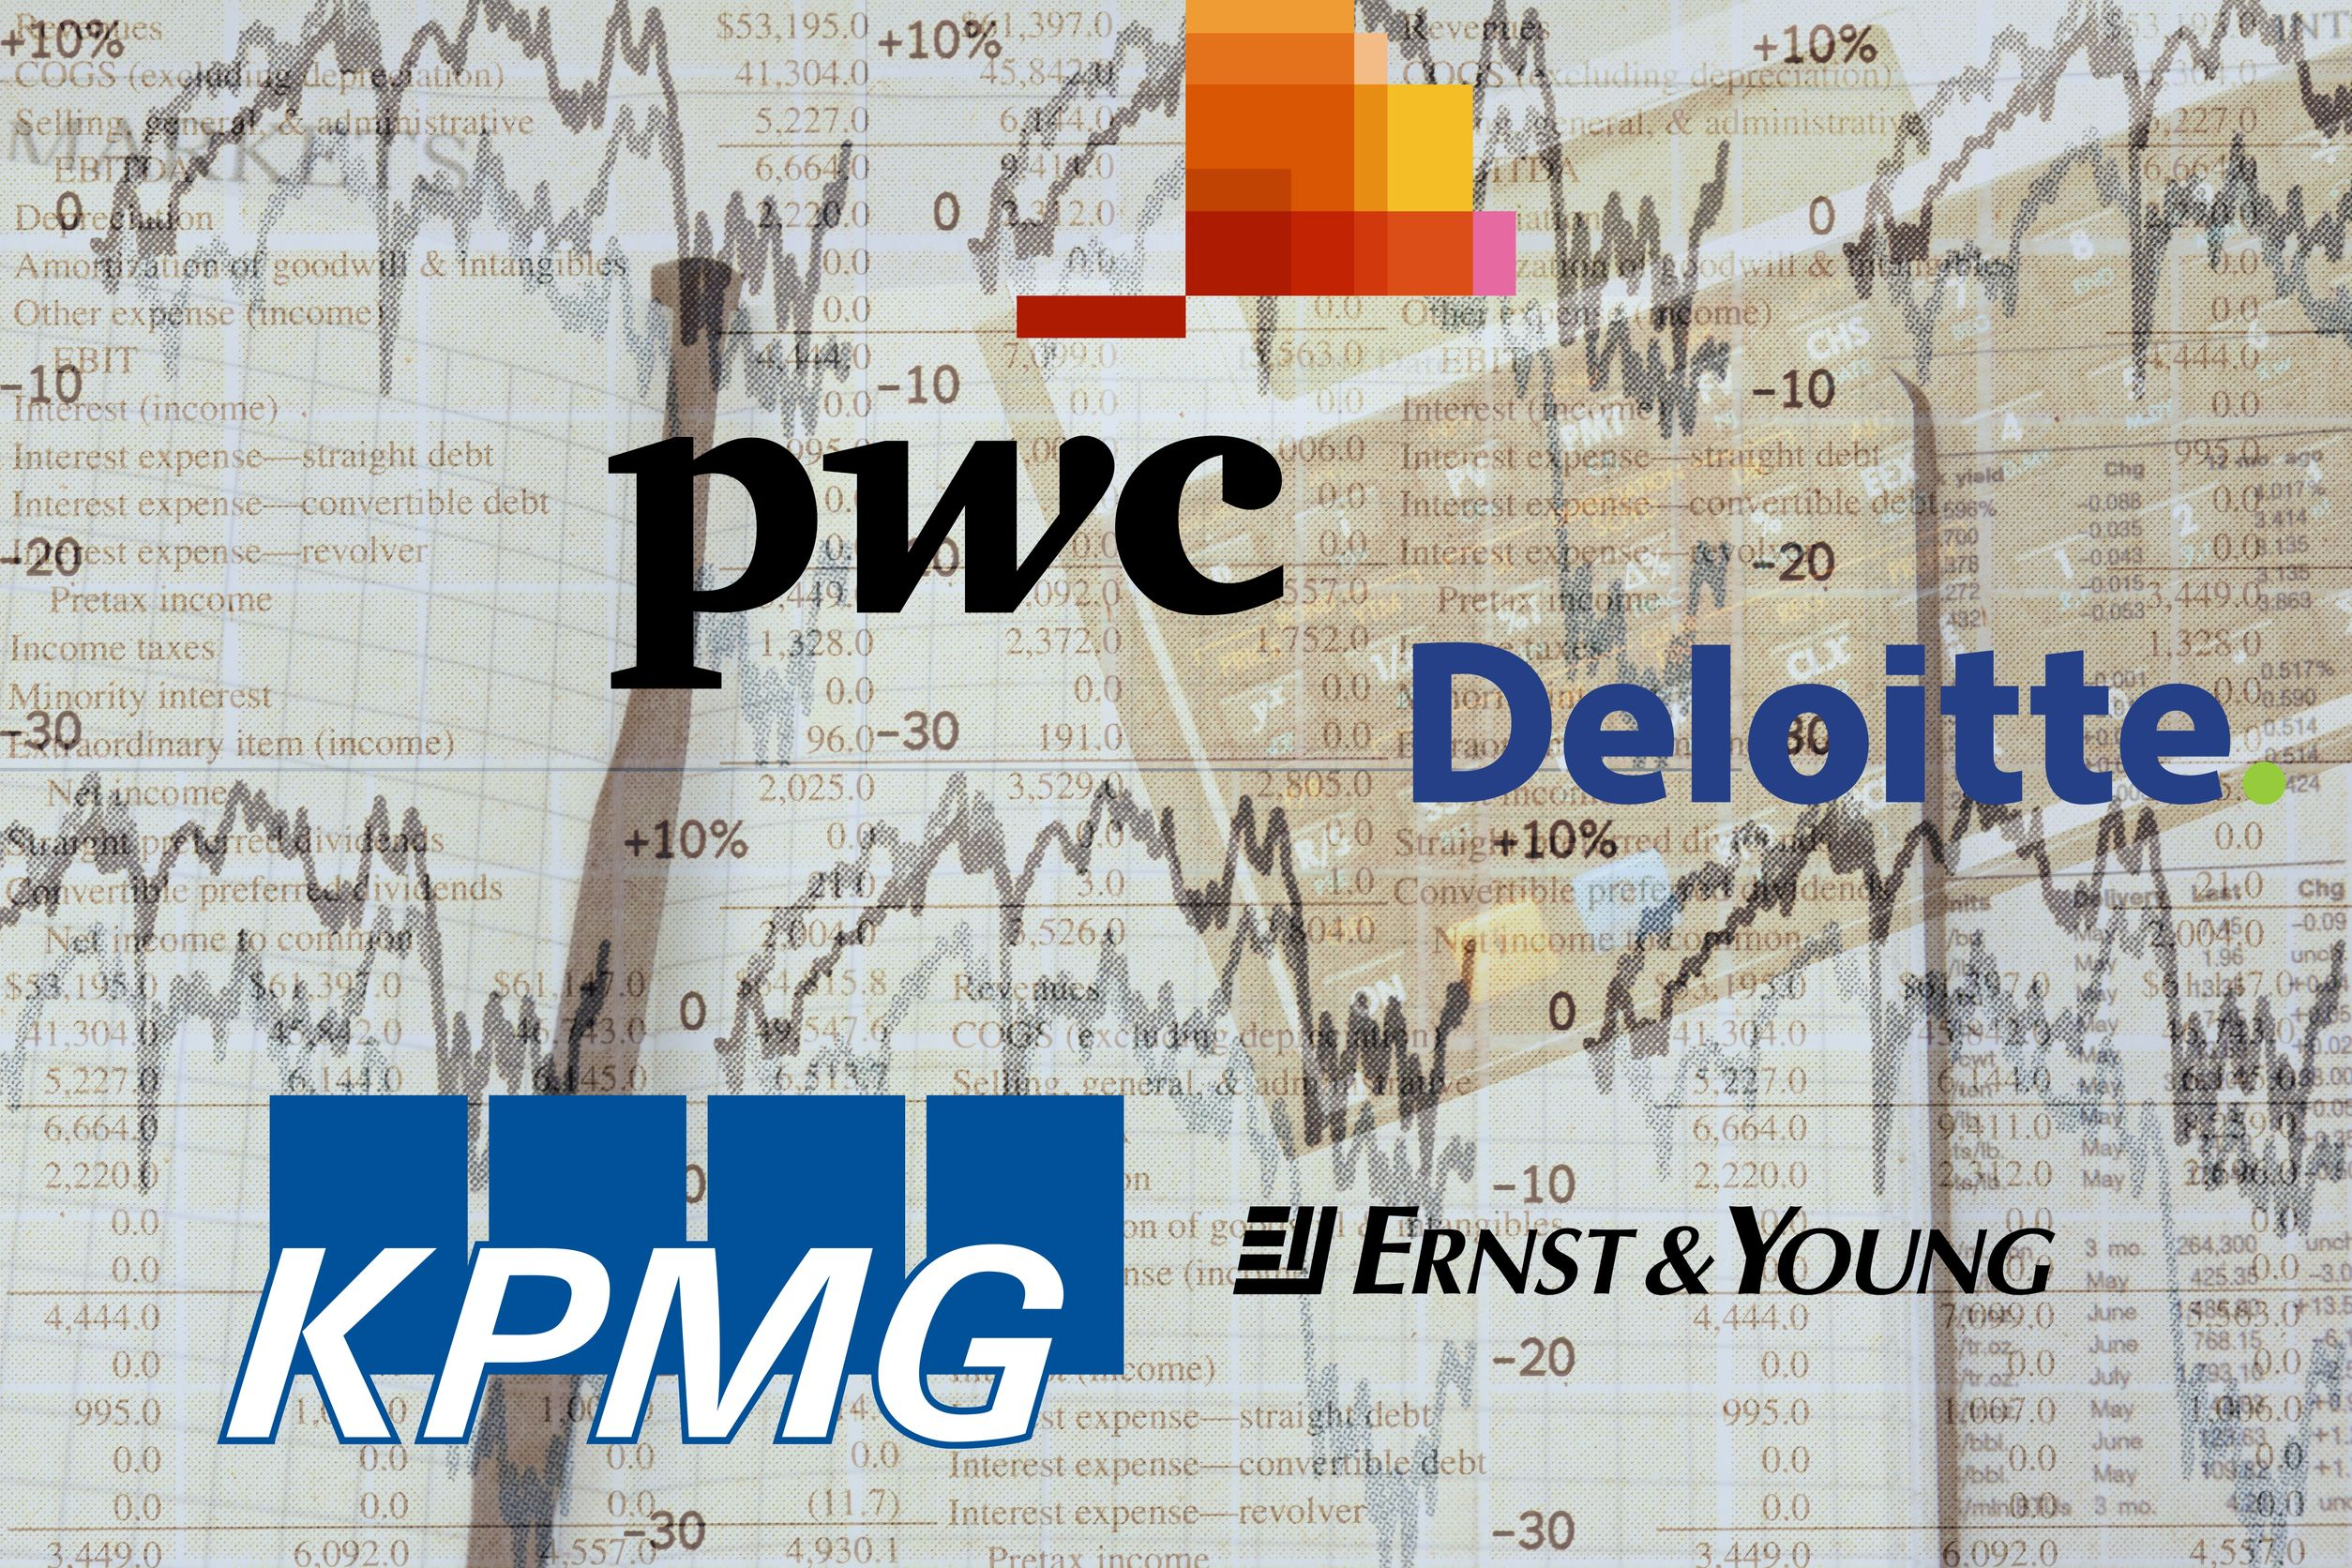 The Big Four: Salaries and Levels in KPMG, PwC, EY and Deloitte